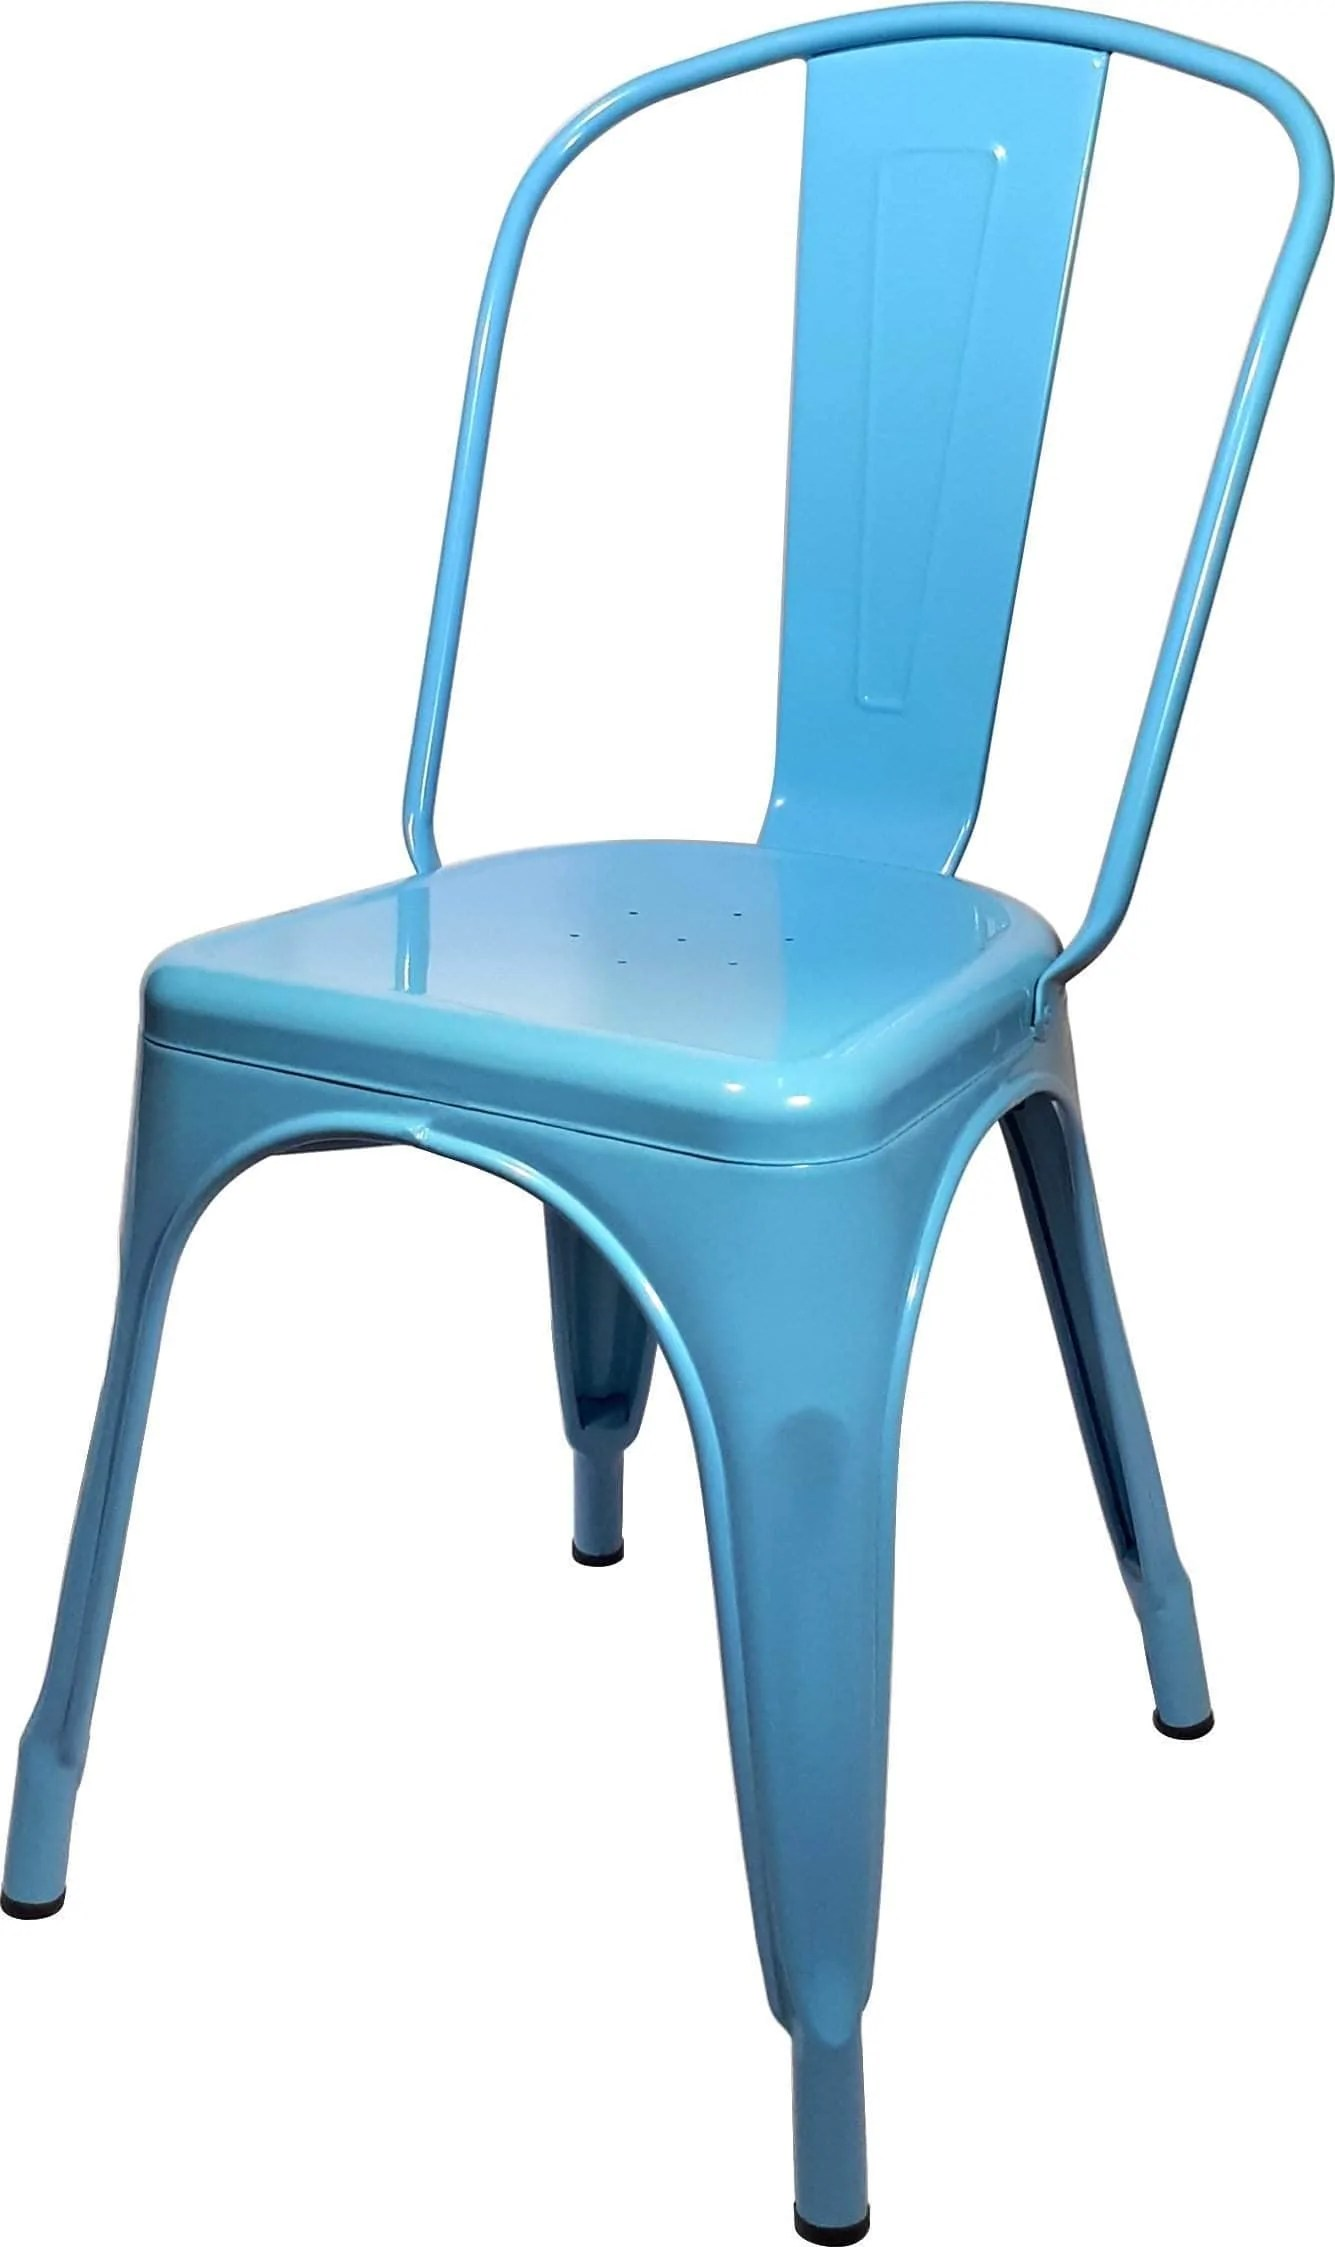 Egg Chair Perth Light Blue Replica Tolix Cafe Chair High Back Buy Online